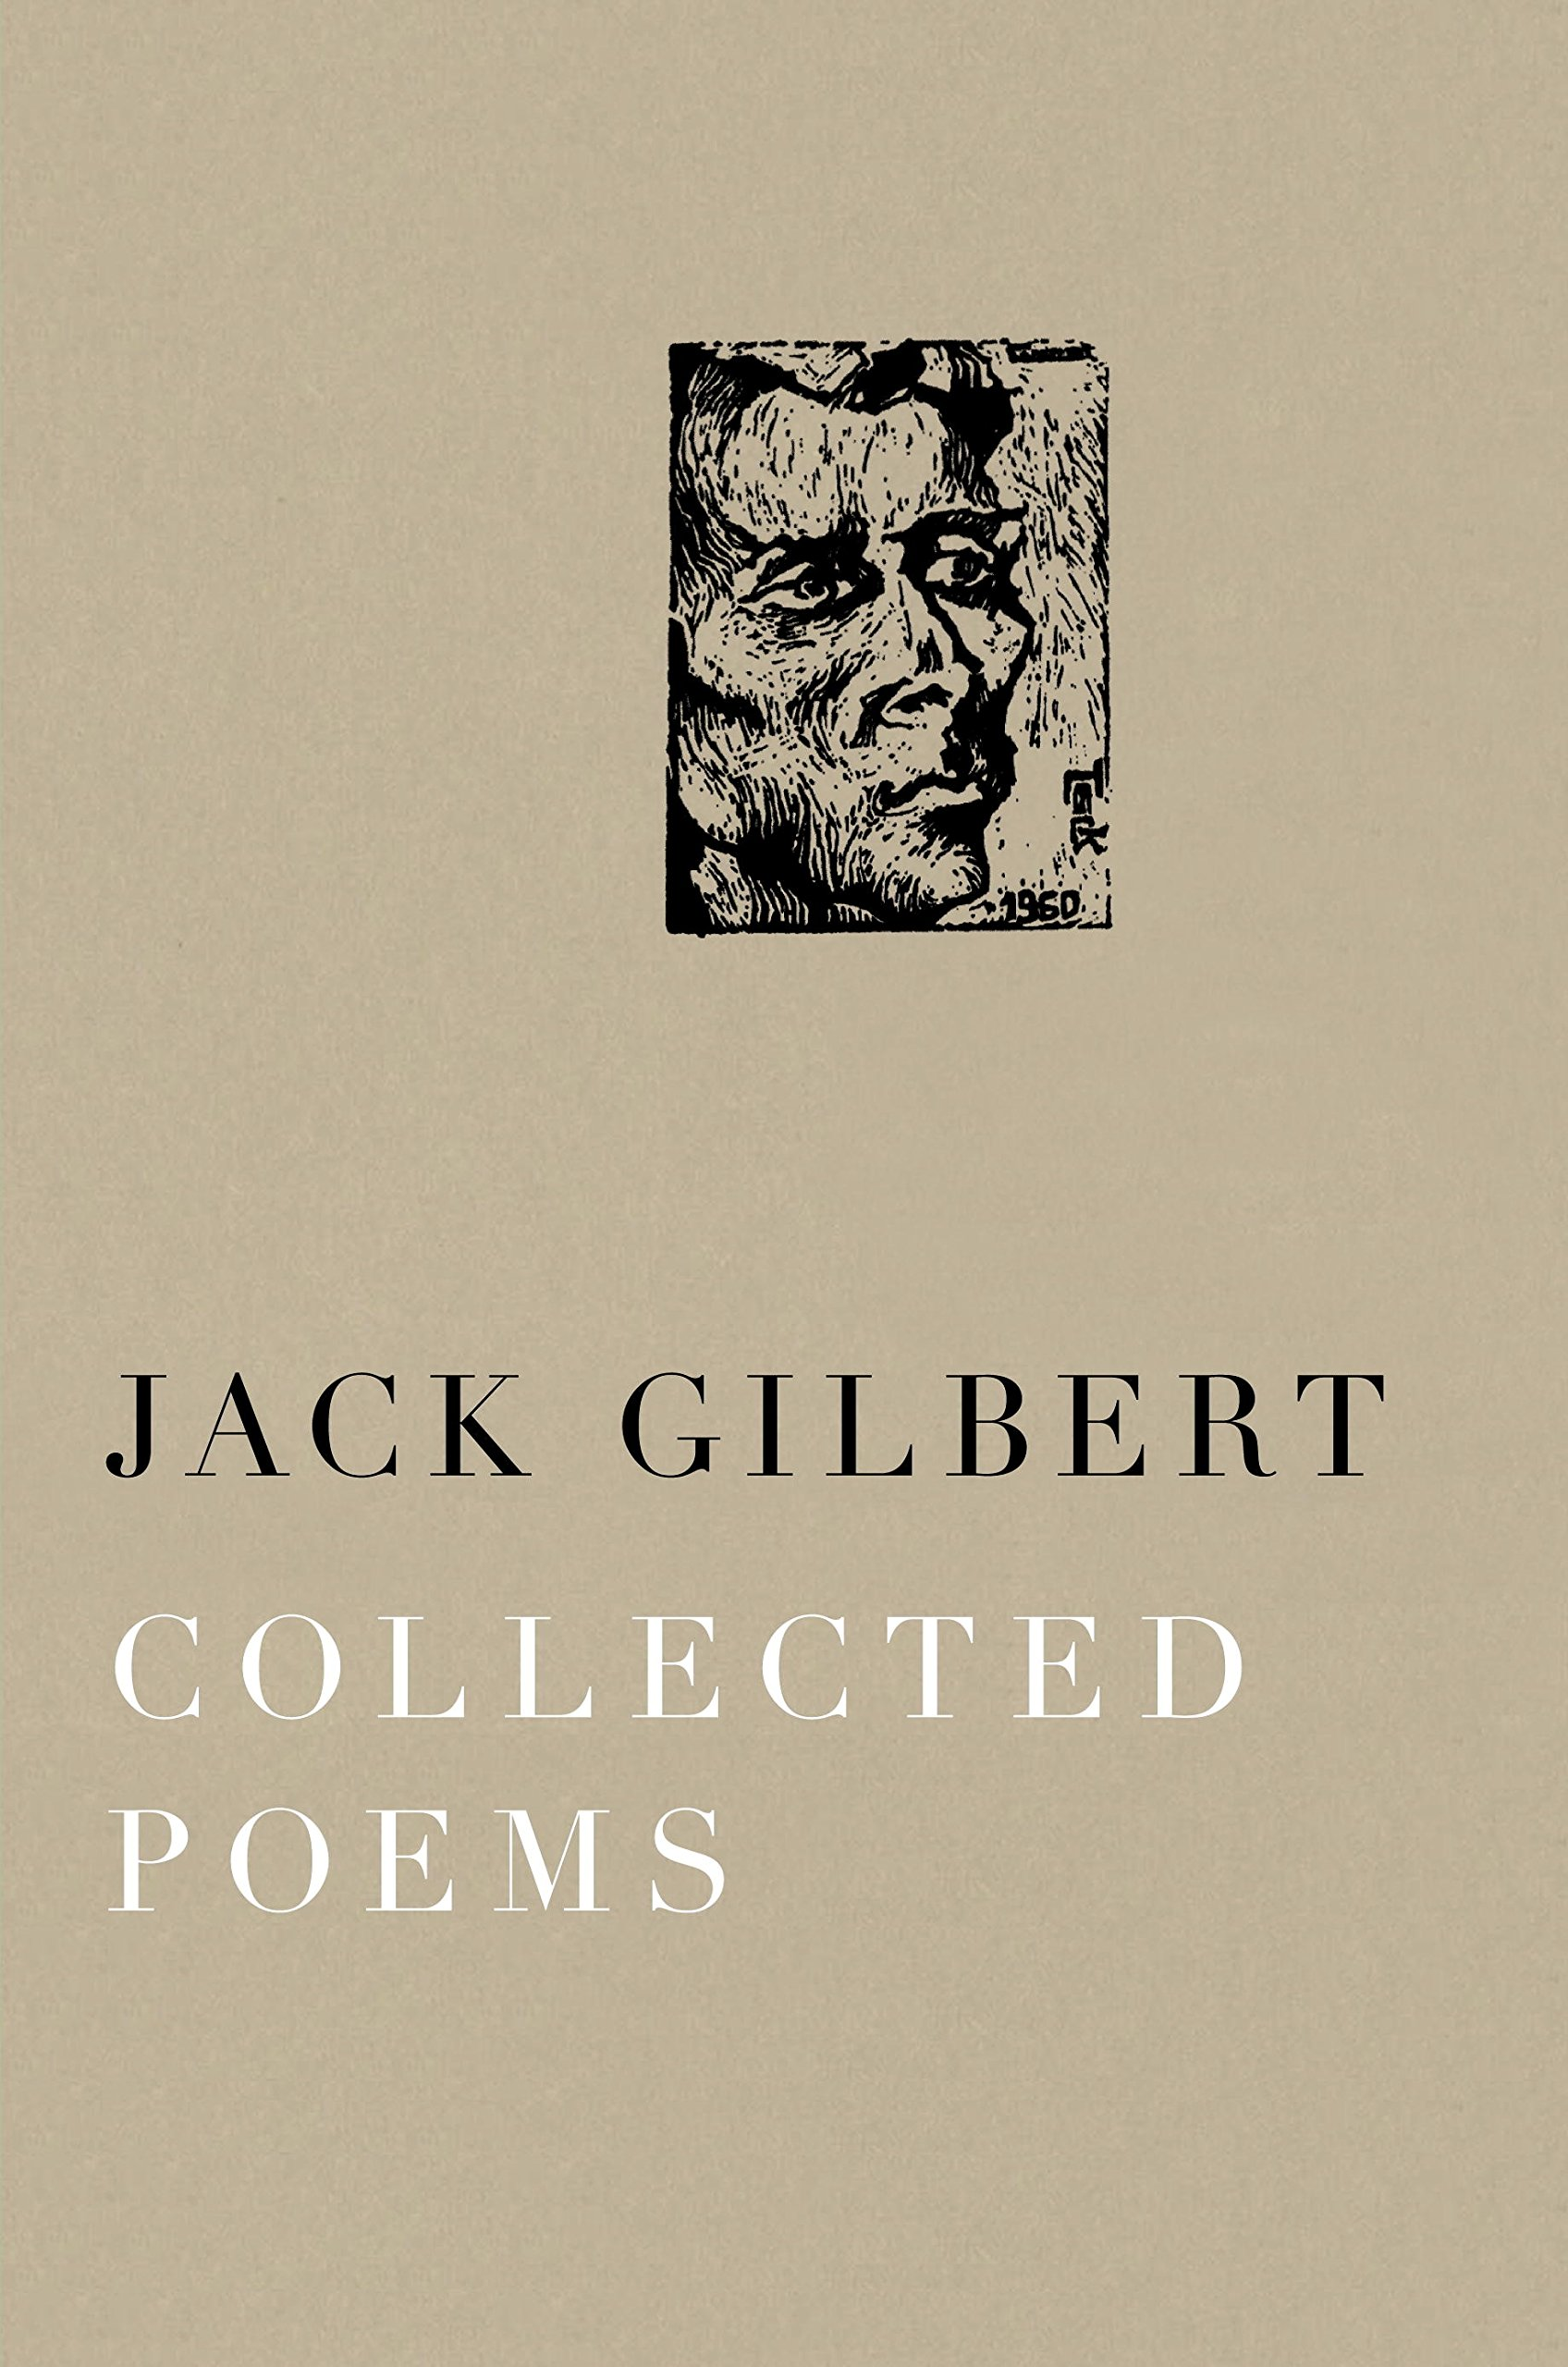 Collected poems jack gilbert 9780375711763 amazon books fandeluxe Images